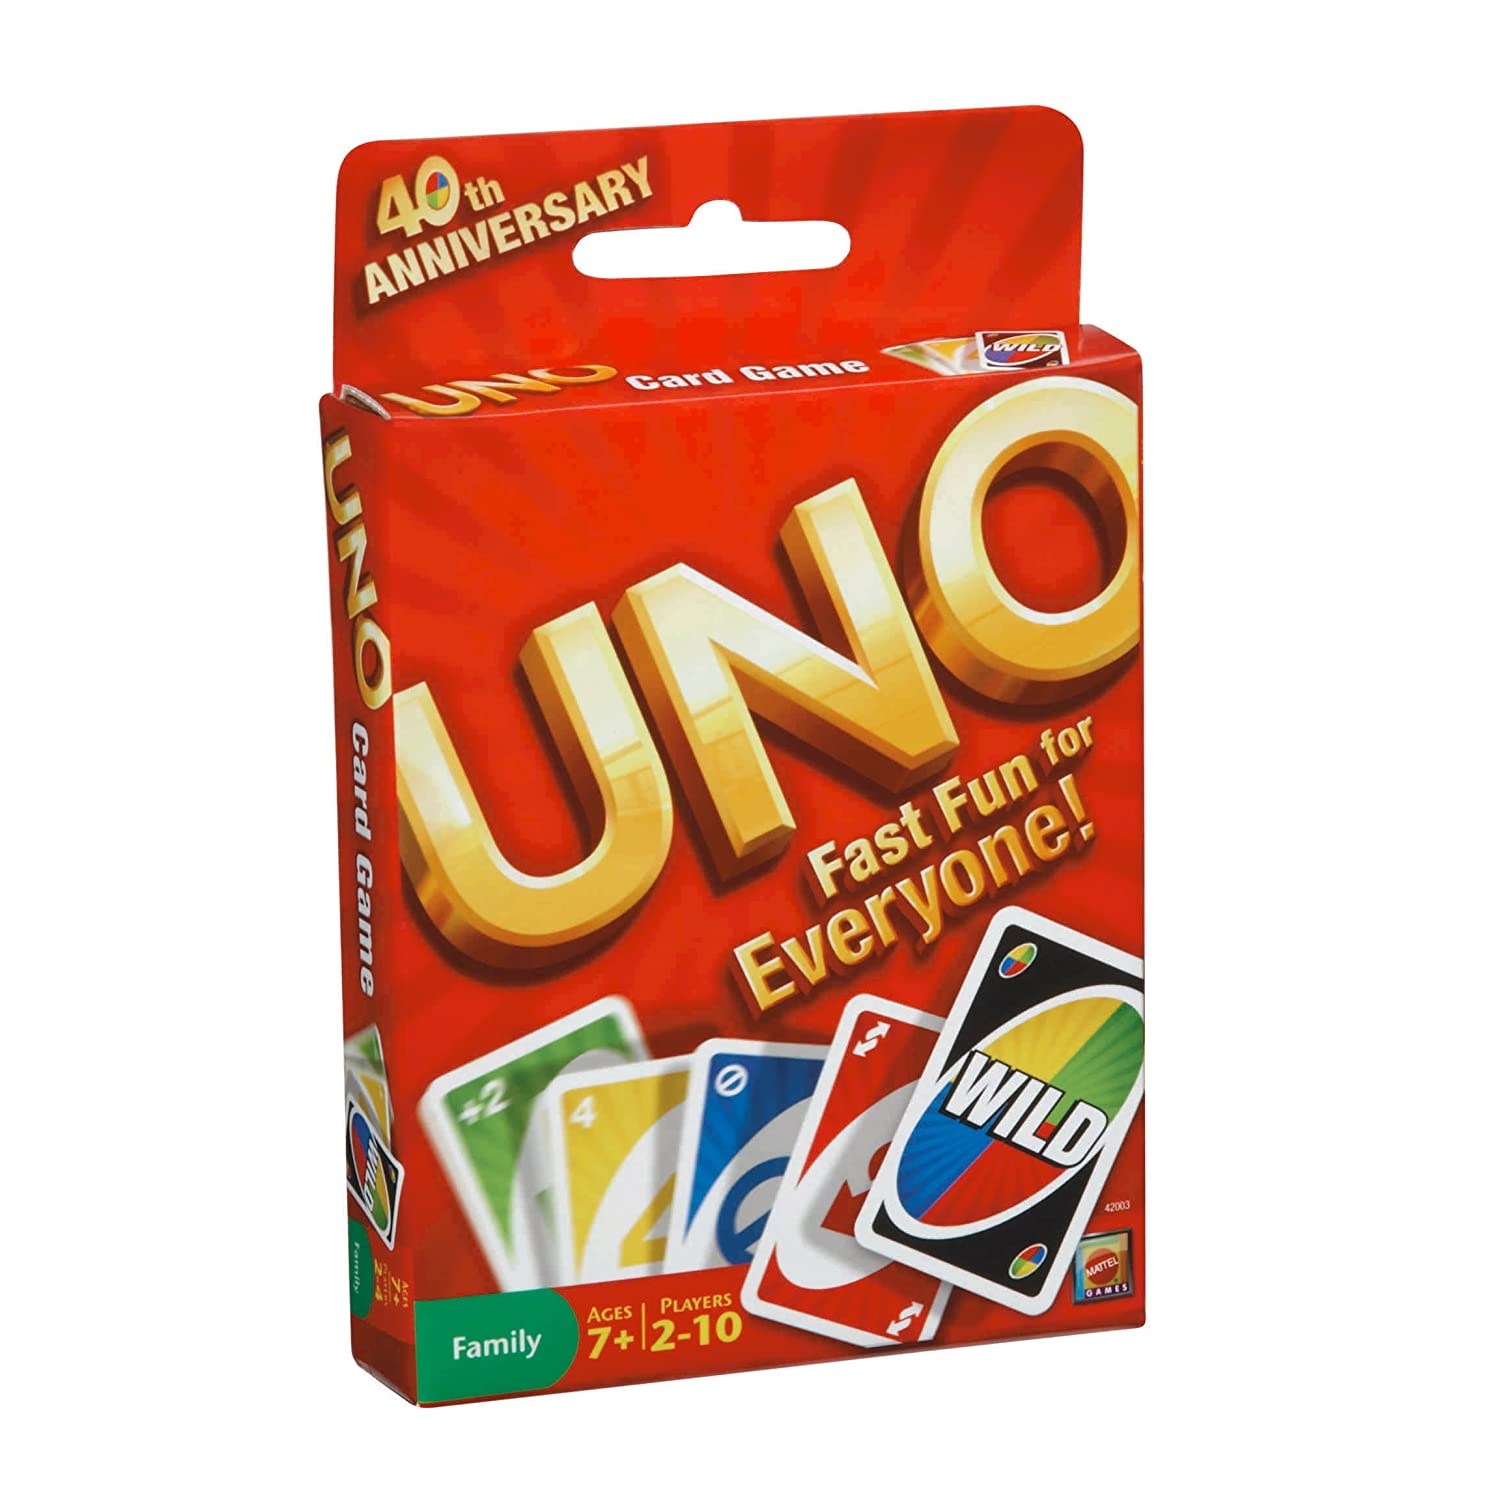 Repurposing UNO as a learning game